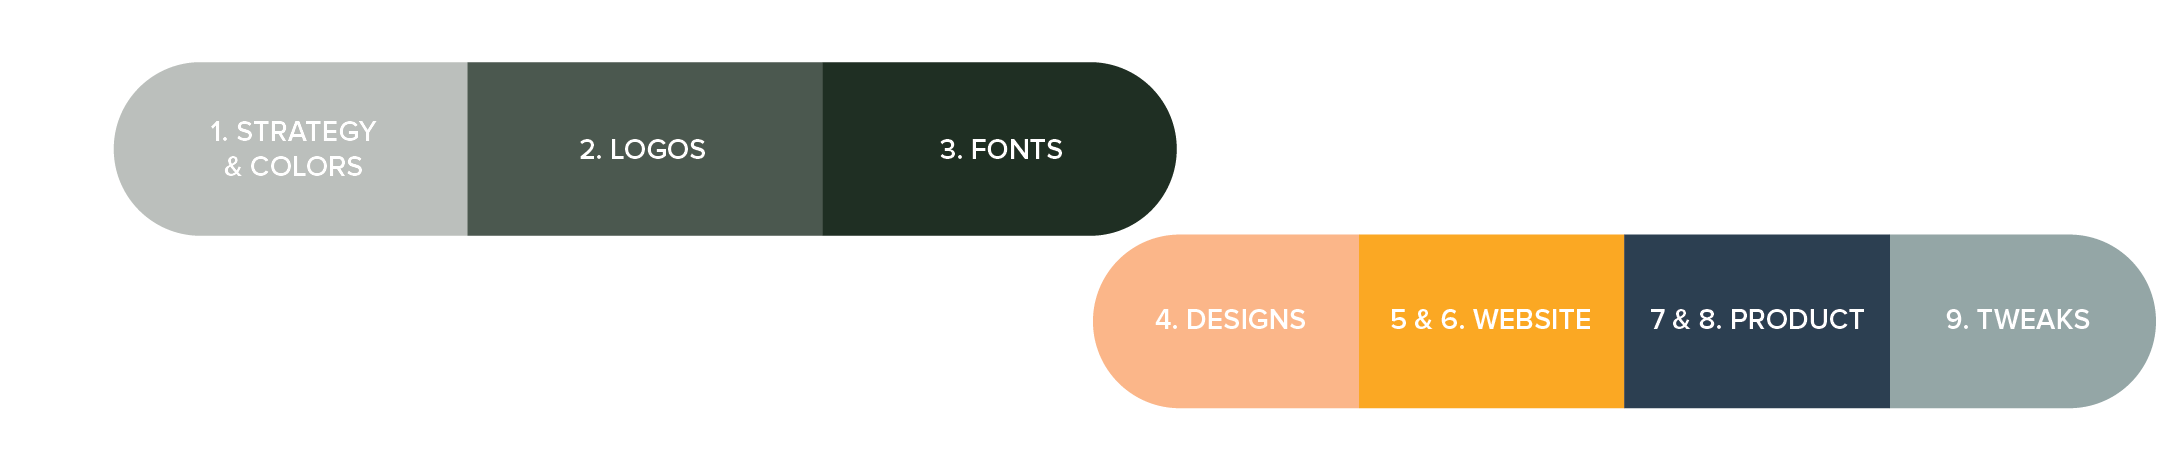 how does a design day work